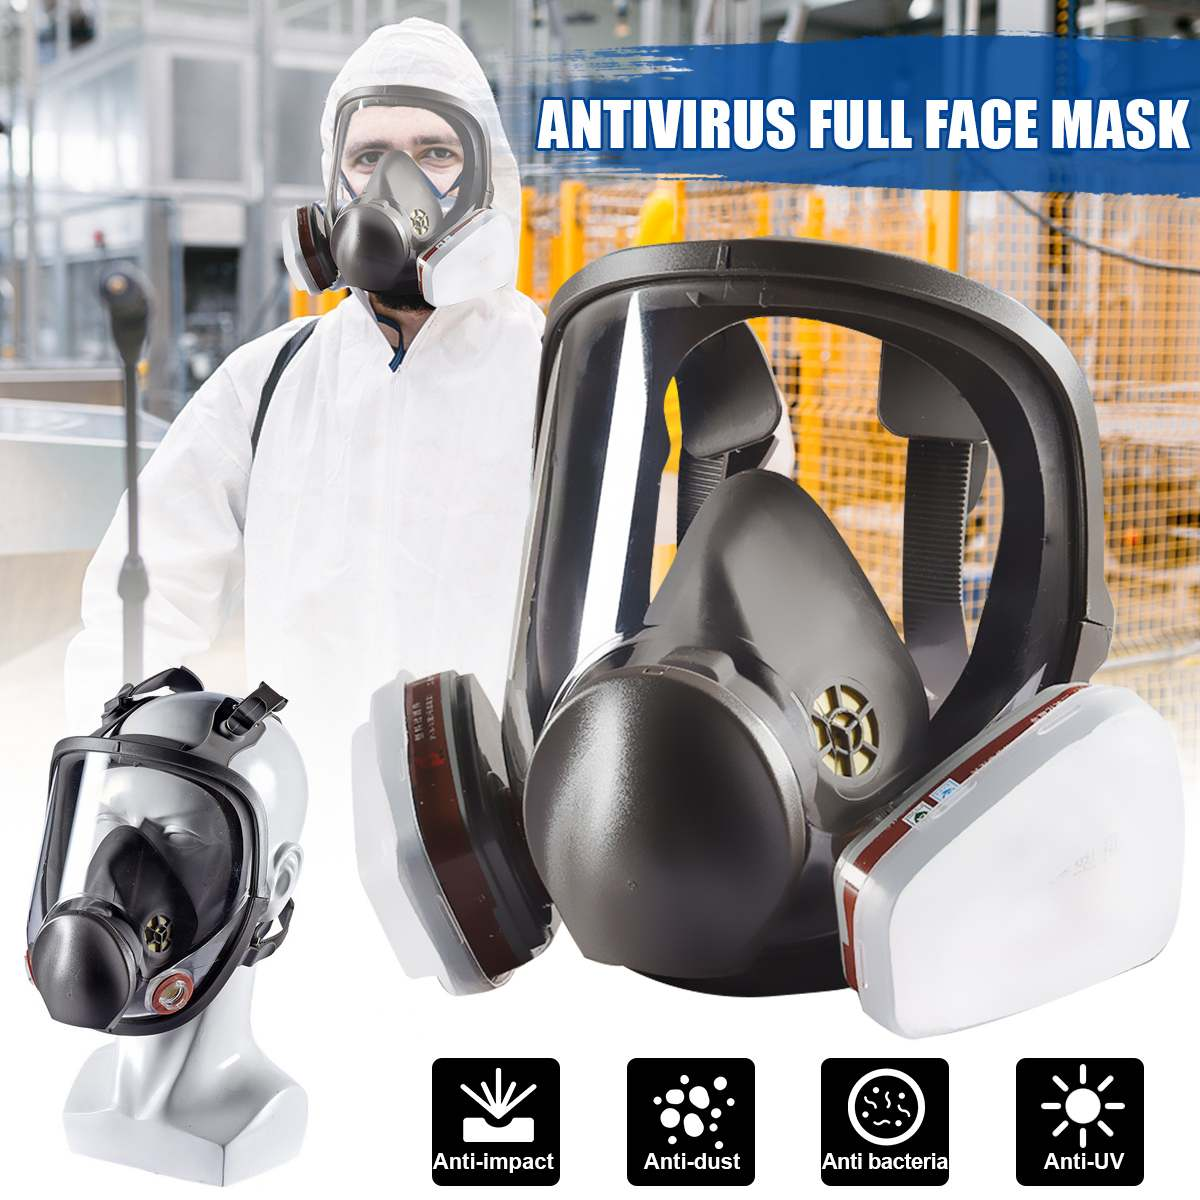 7/15 In 1 Suit Painting Spraying Chemcial Respirator With Filter Cotton Filter Box Adjustable For Gas Mask Full Face Facepiece